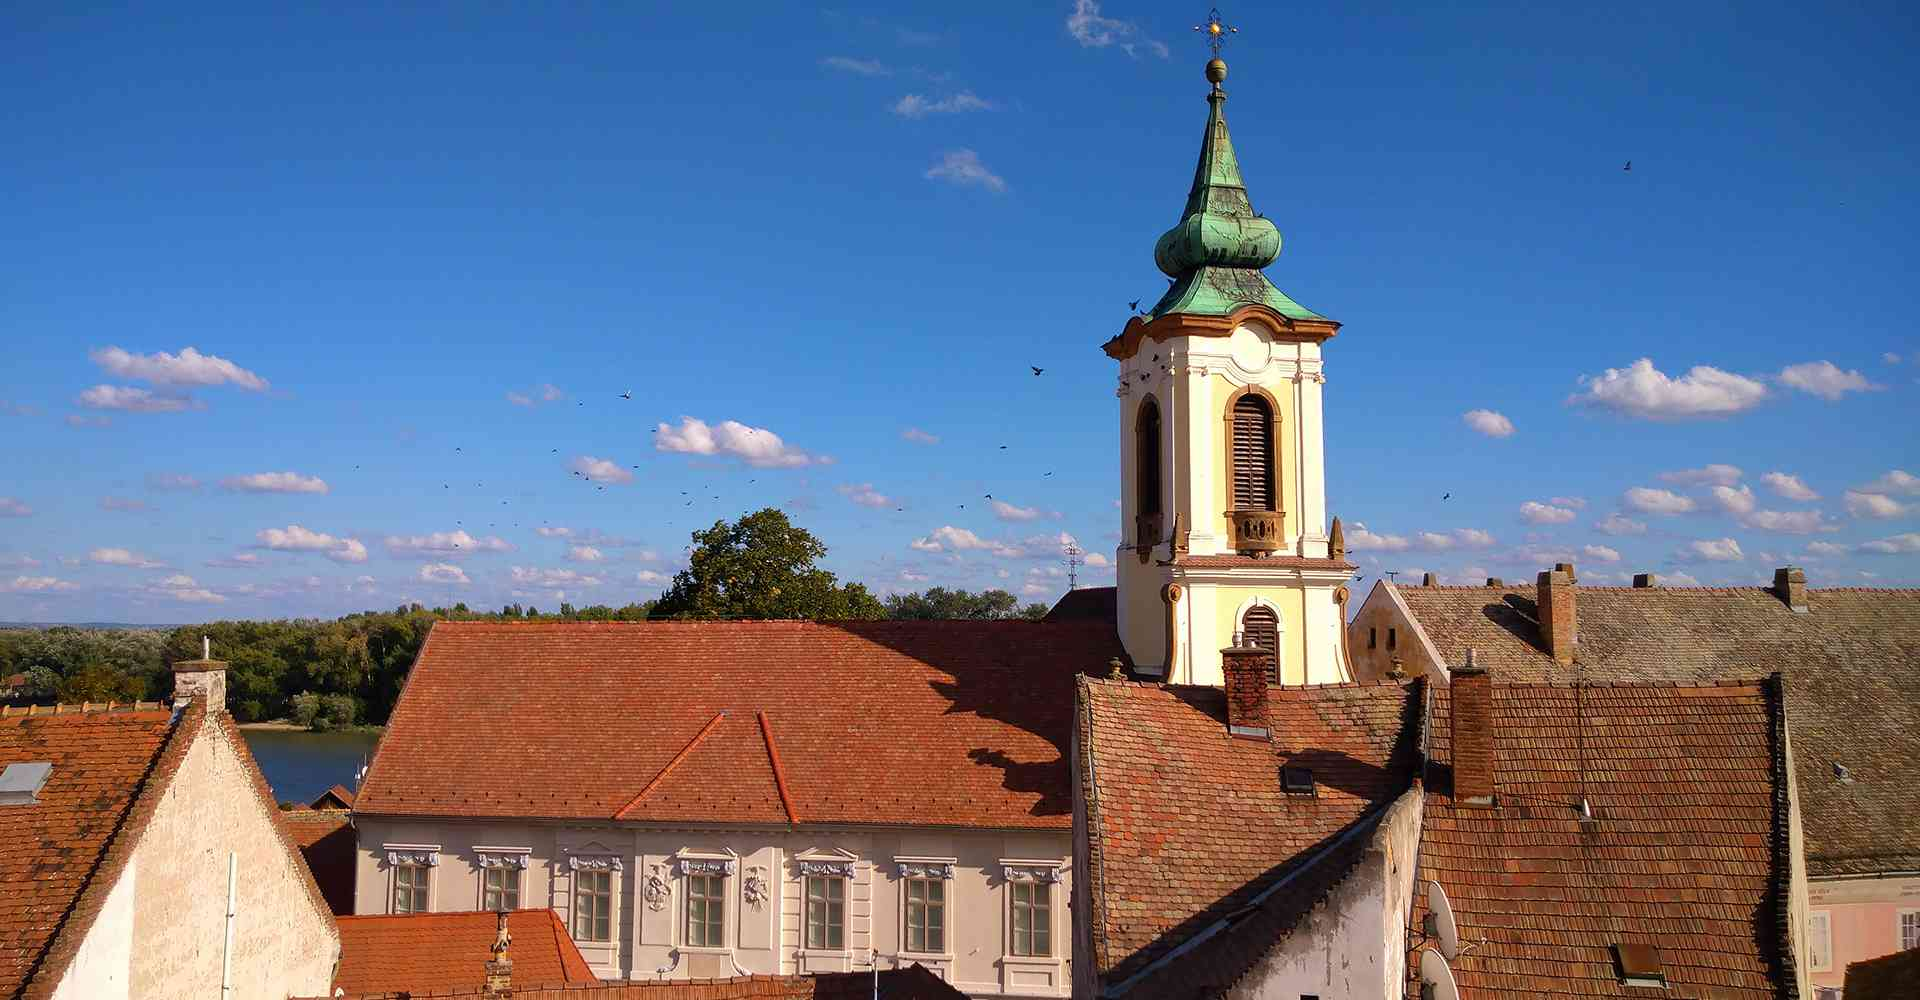 Szentendre_Őri-Art_Gallery_S9-View_of_the_Roofs